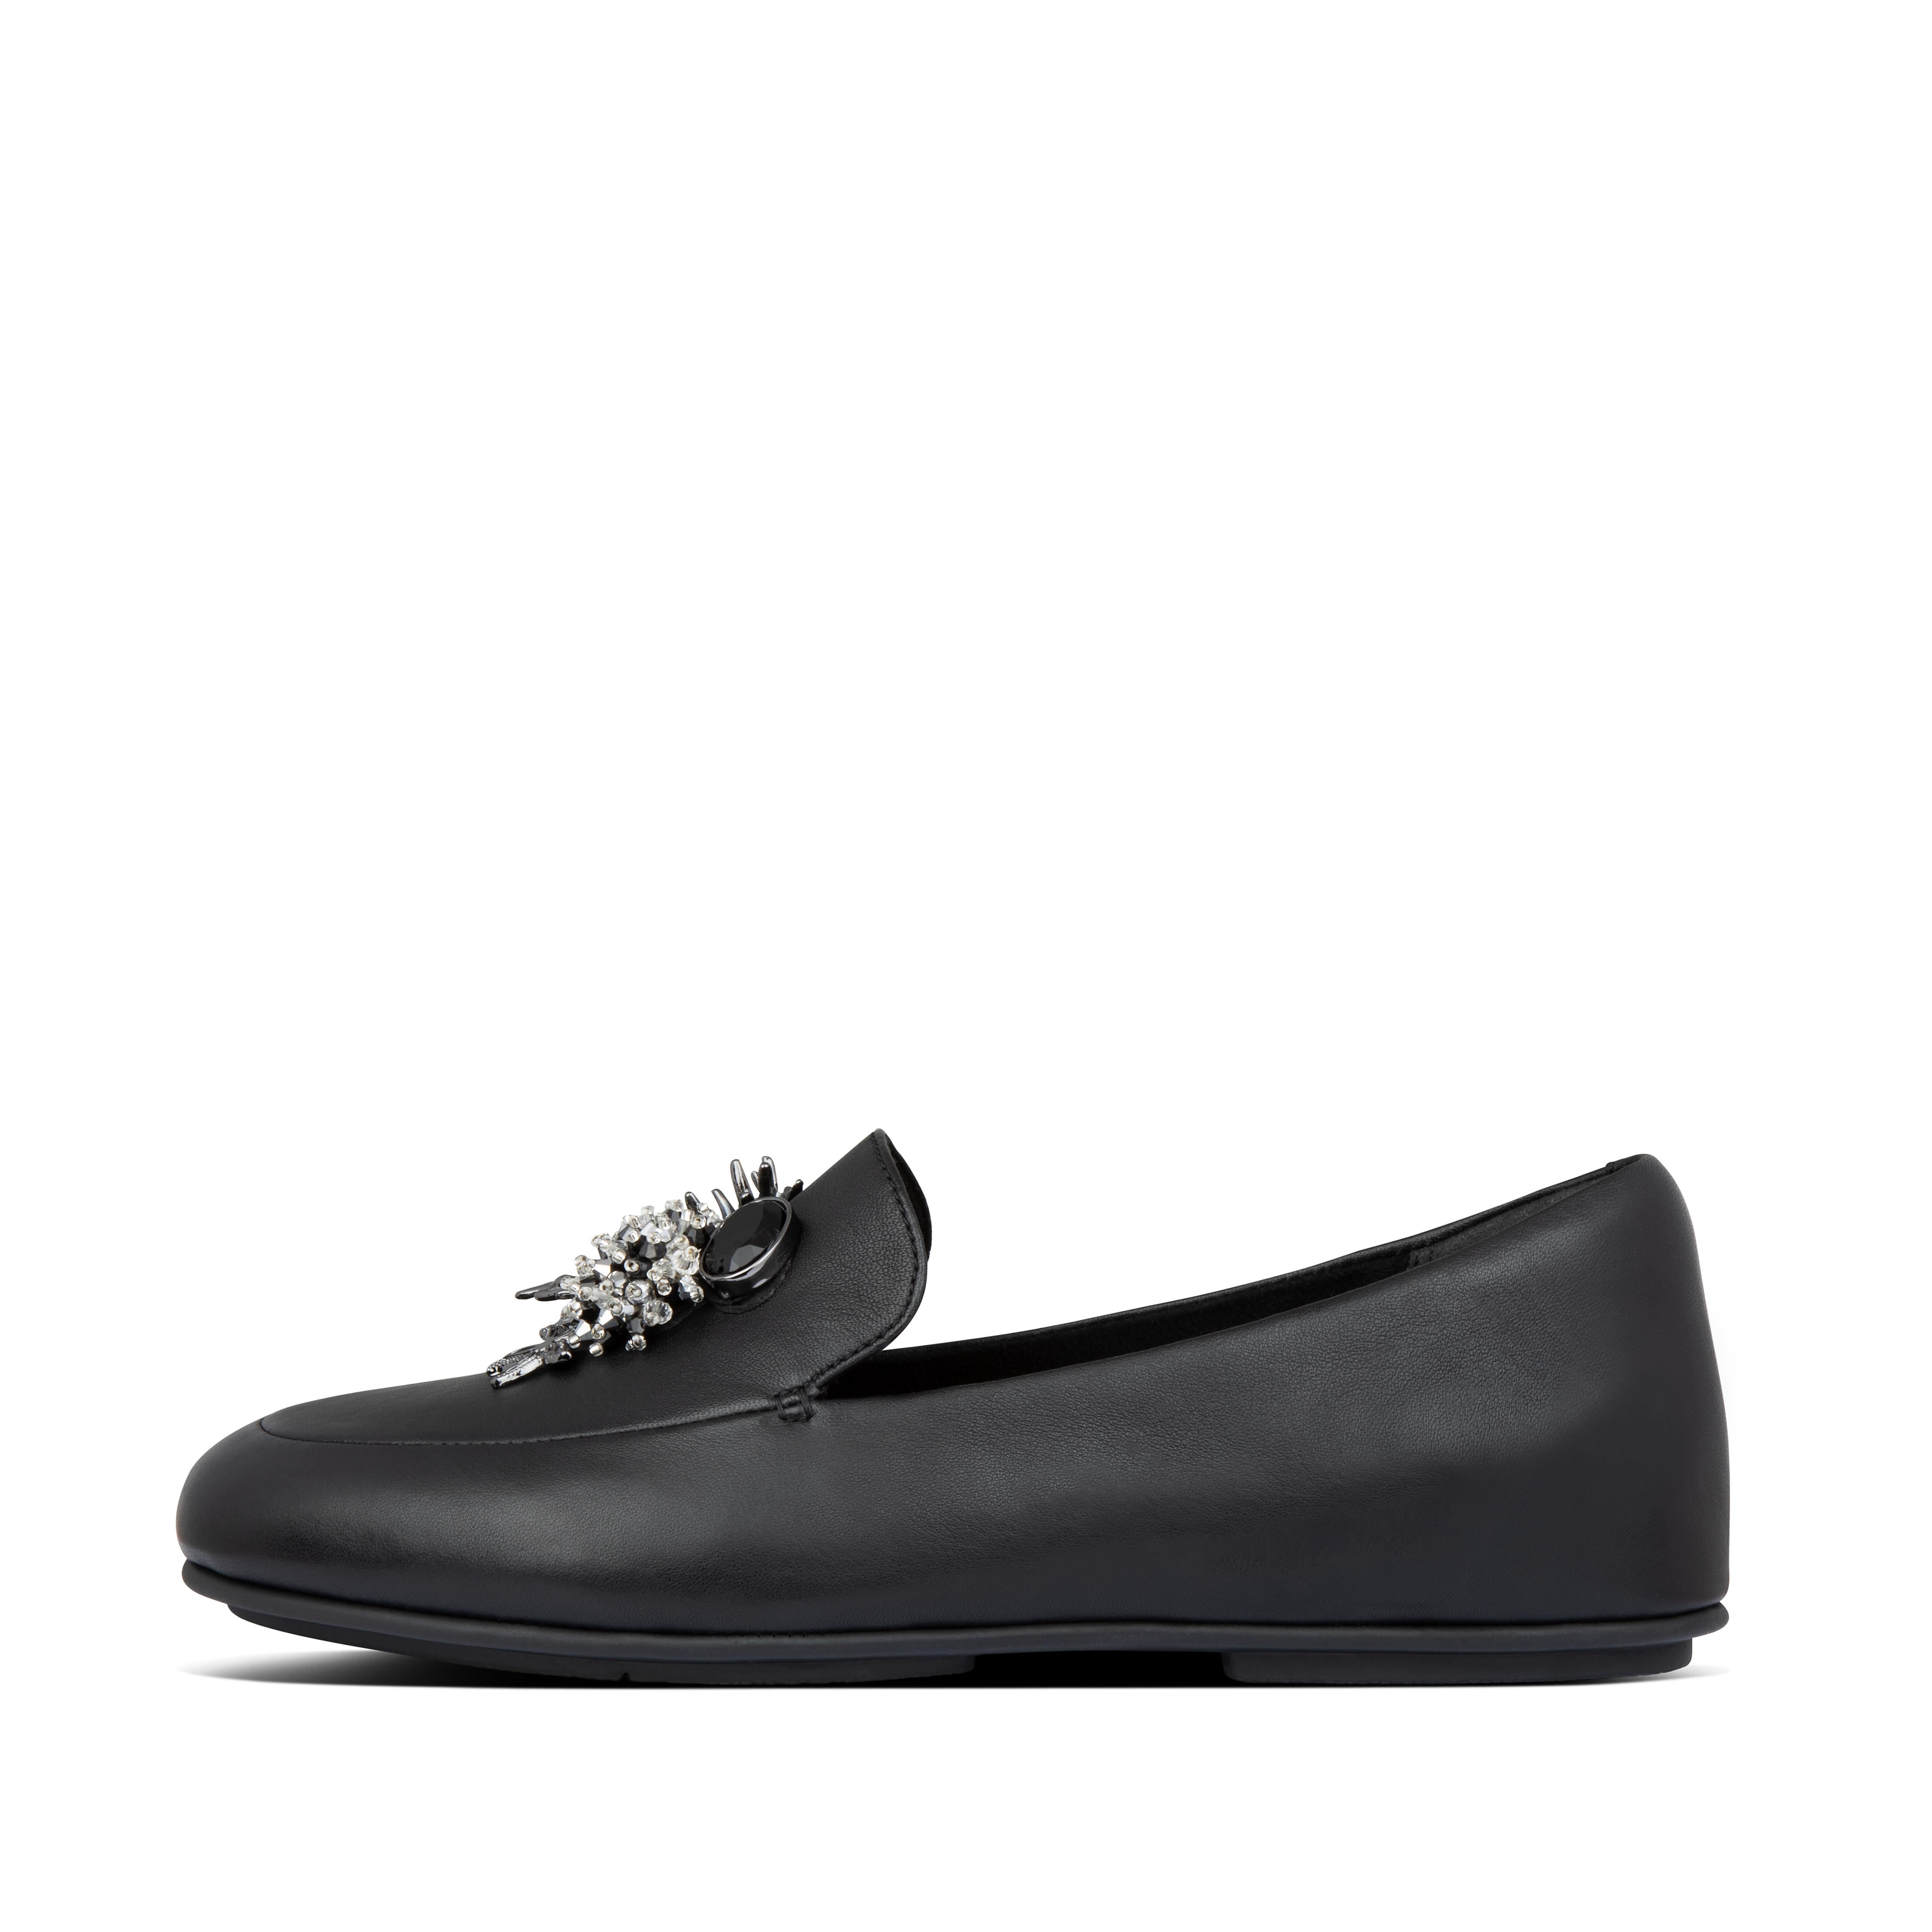 Our Lena loafers are ultimate proof that less is more. Ultra-sleek and featherlight, in soft leather, these\\\'ll add class to every outfit you wear them with. Yet they deliver major comfort thanks to their anatomically shaped footbed and our high-rebound Dynamicush™ cushioning hidden in a classic \\\'flat sole\\\'. This season adorned with a cluster of delicate, jeweled marine \\\'treasures\\\' - inspired by sea life in the depths of the Mediterranean.